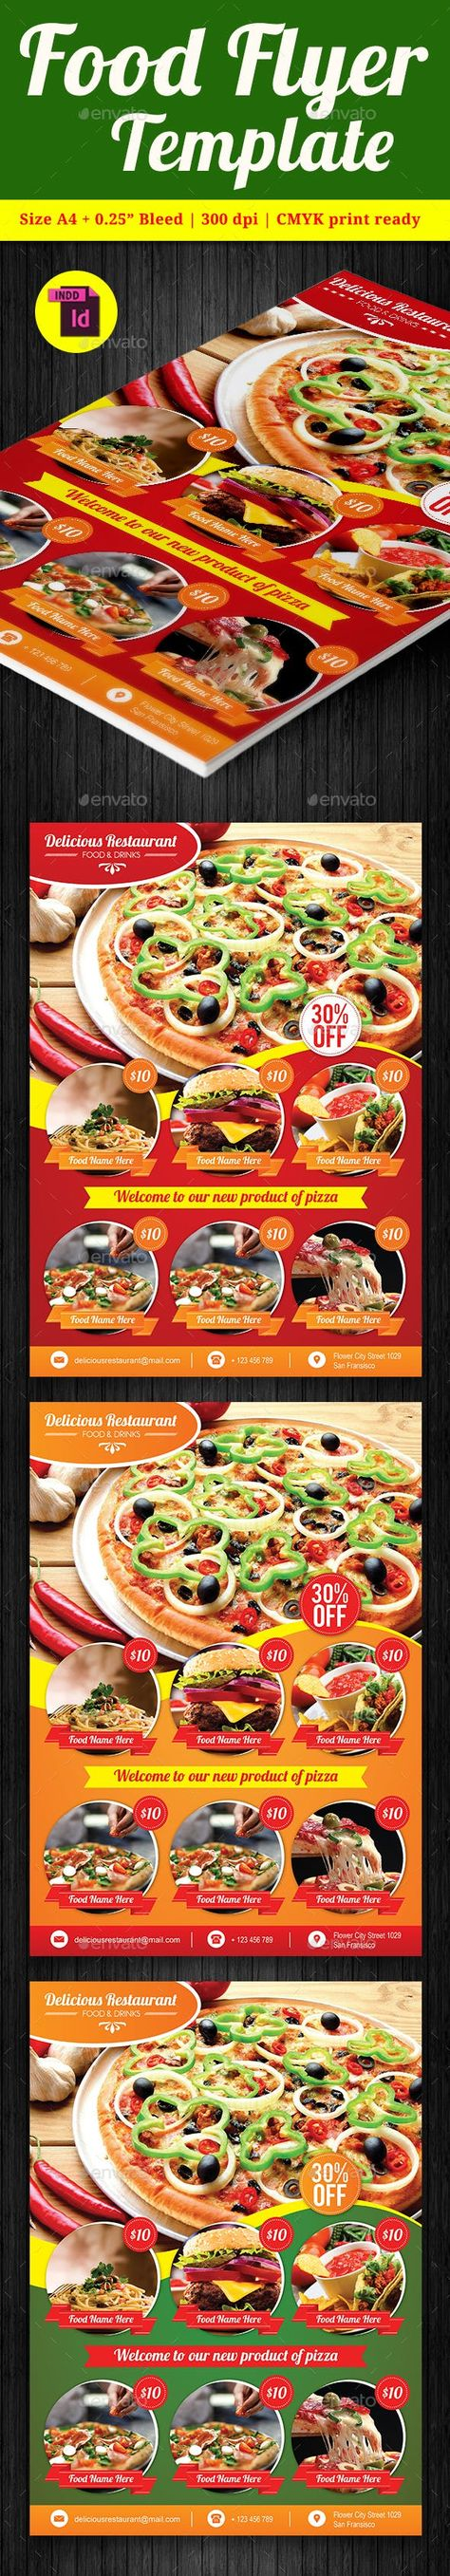 Food Flyer Template Vol. 8 — InDesign INDD #menus #print ready